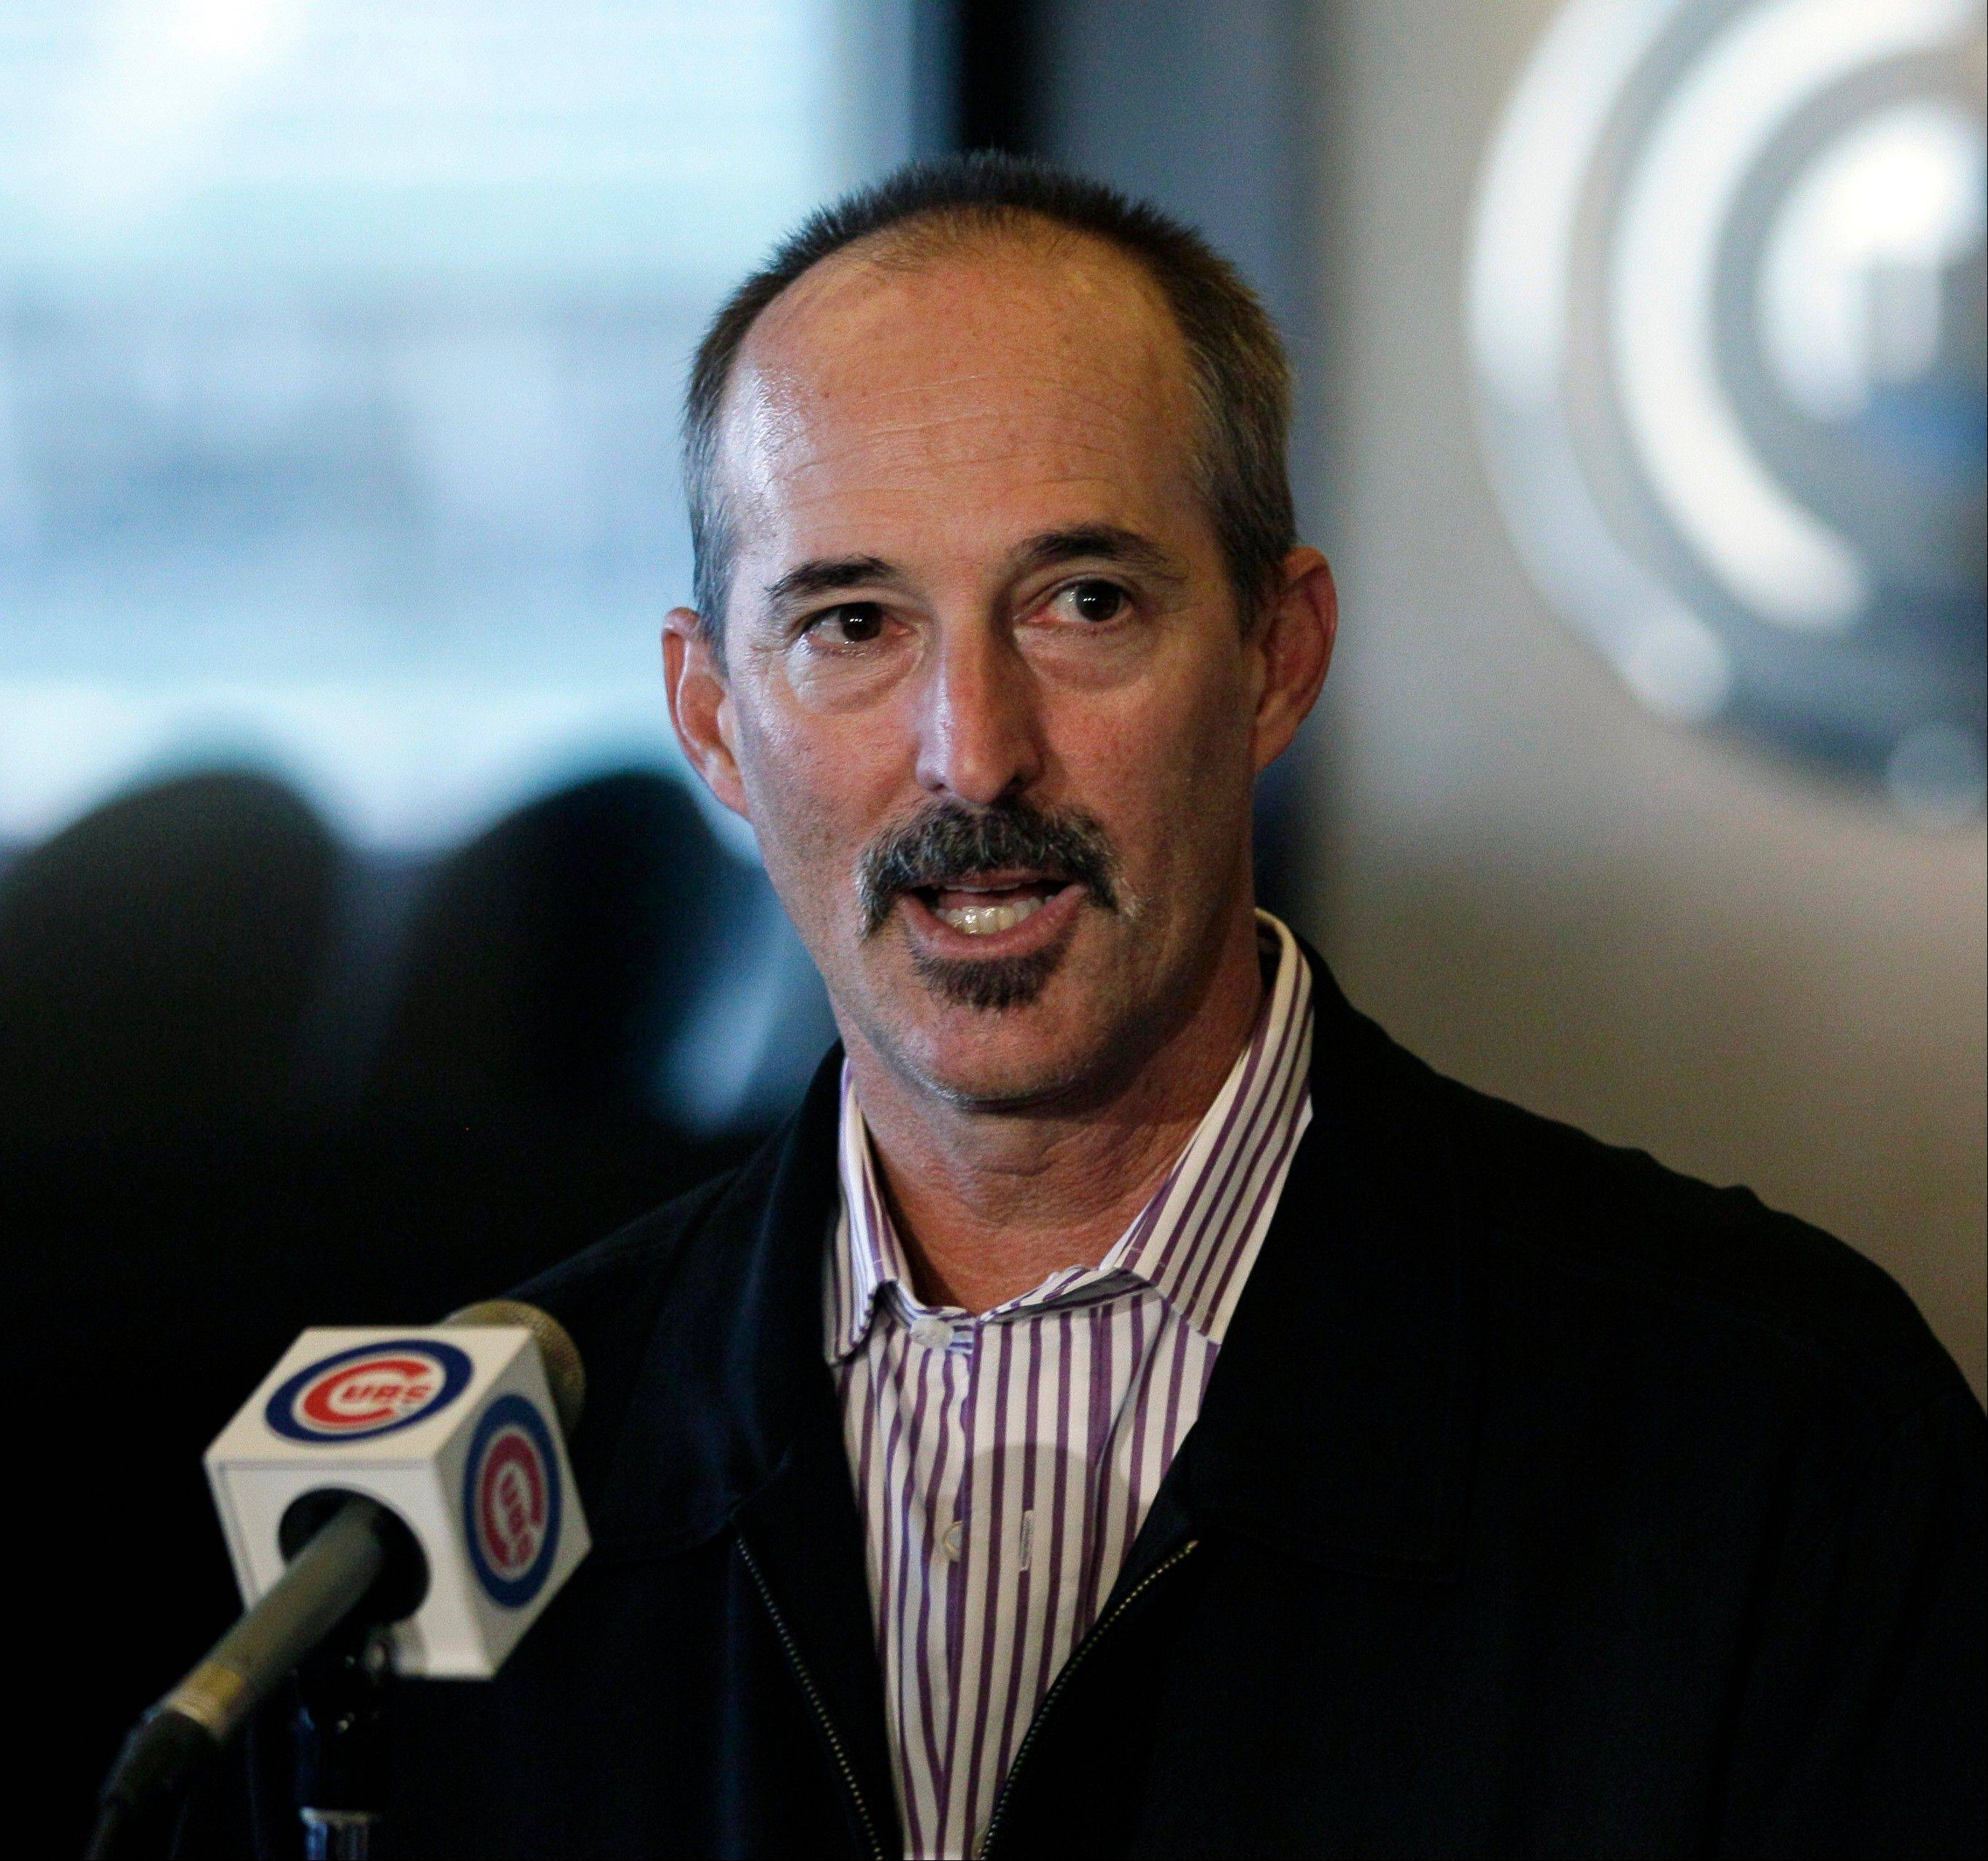 Texas Rangers pitching coach Mike Maddux speaks at a news conference following his interview for the manager position with the Cubs at Wrigley Field.